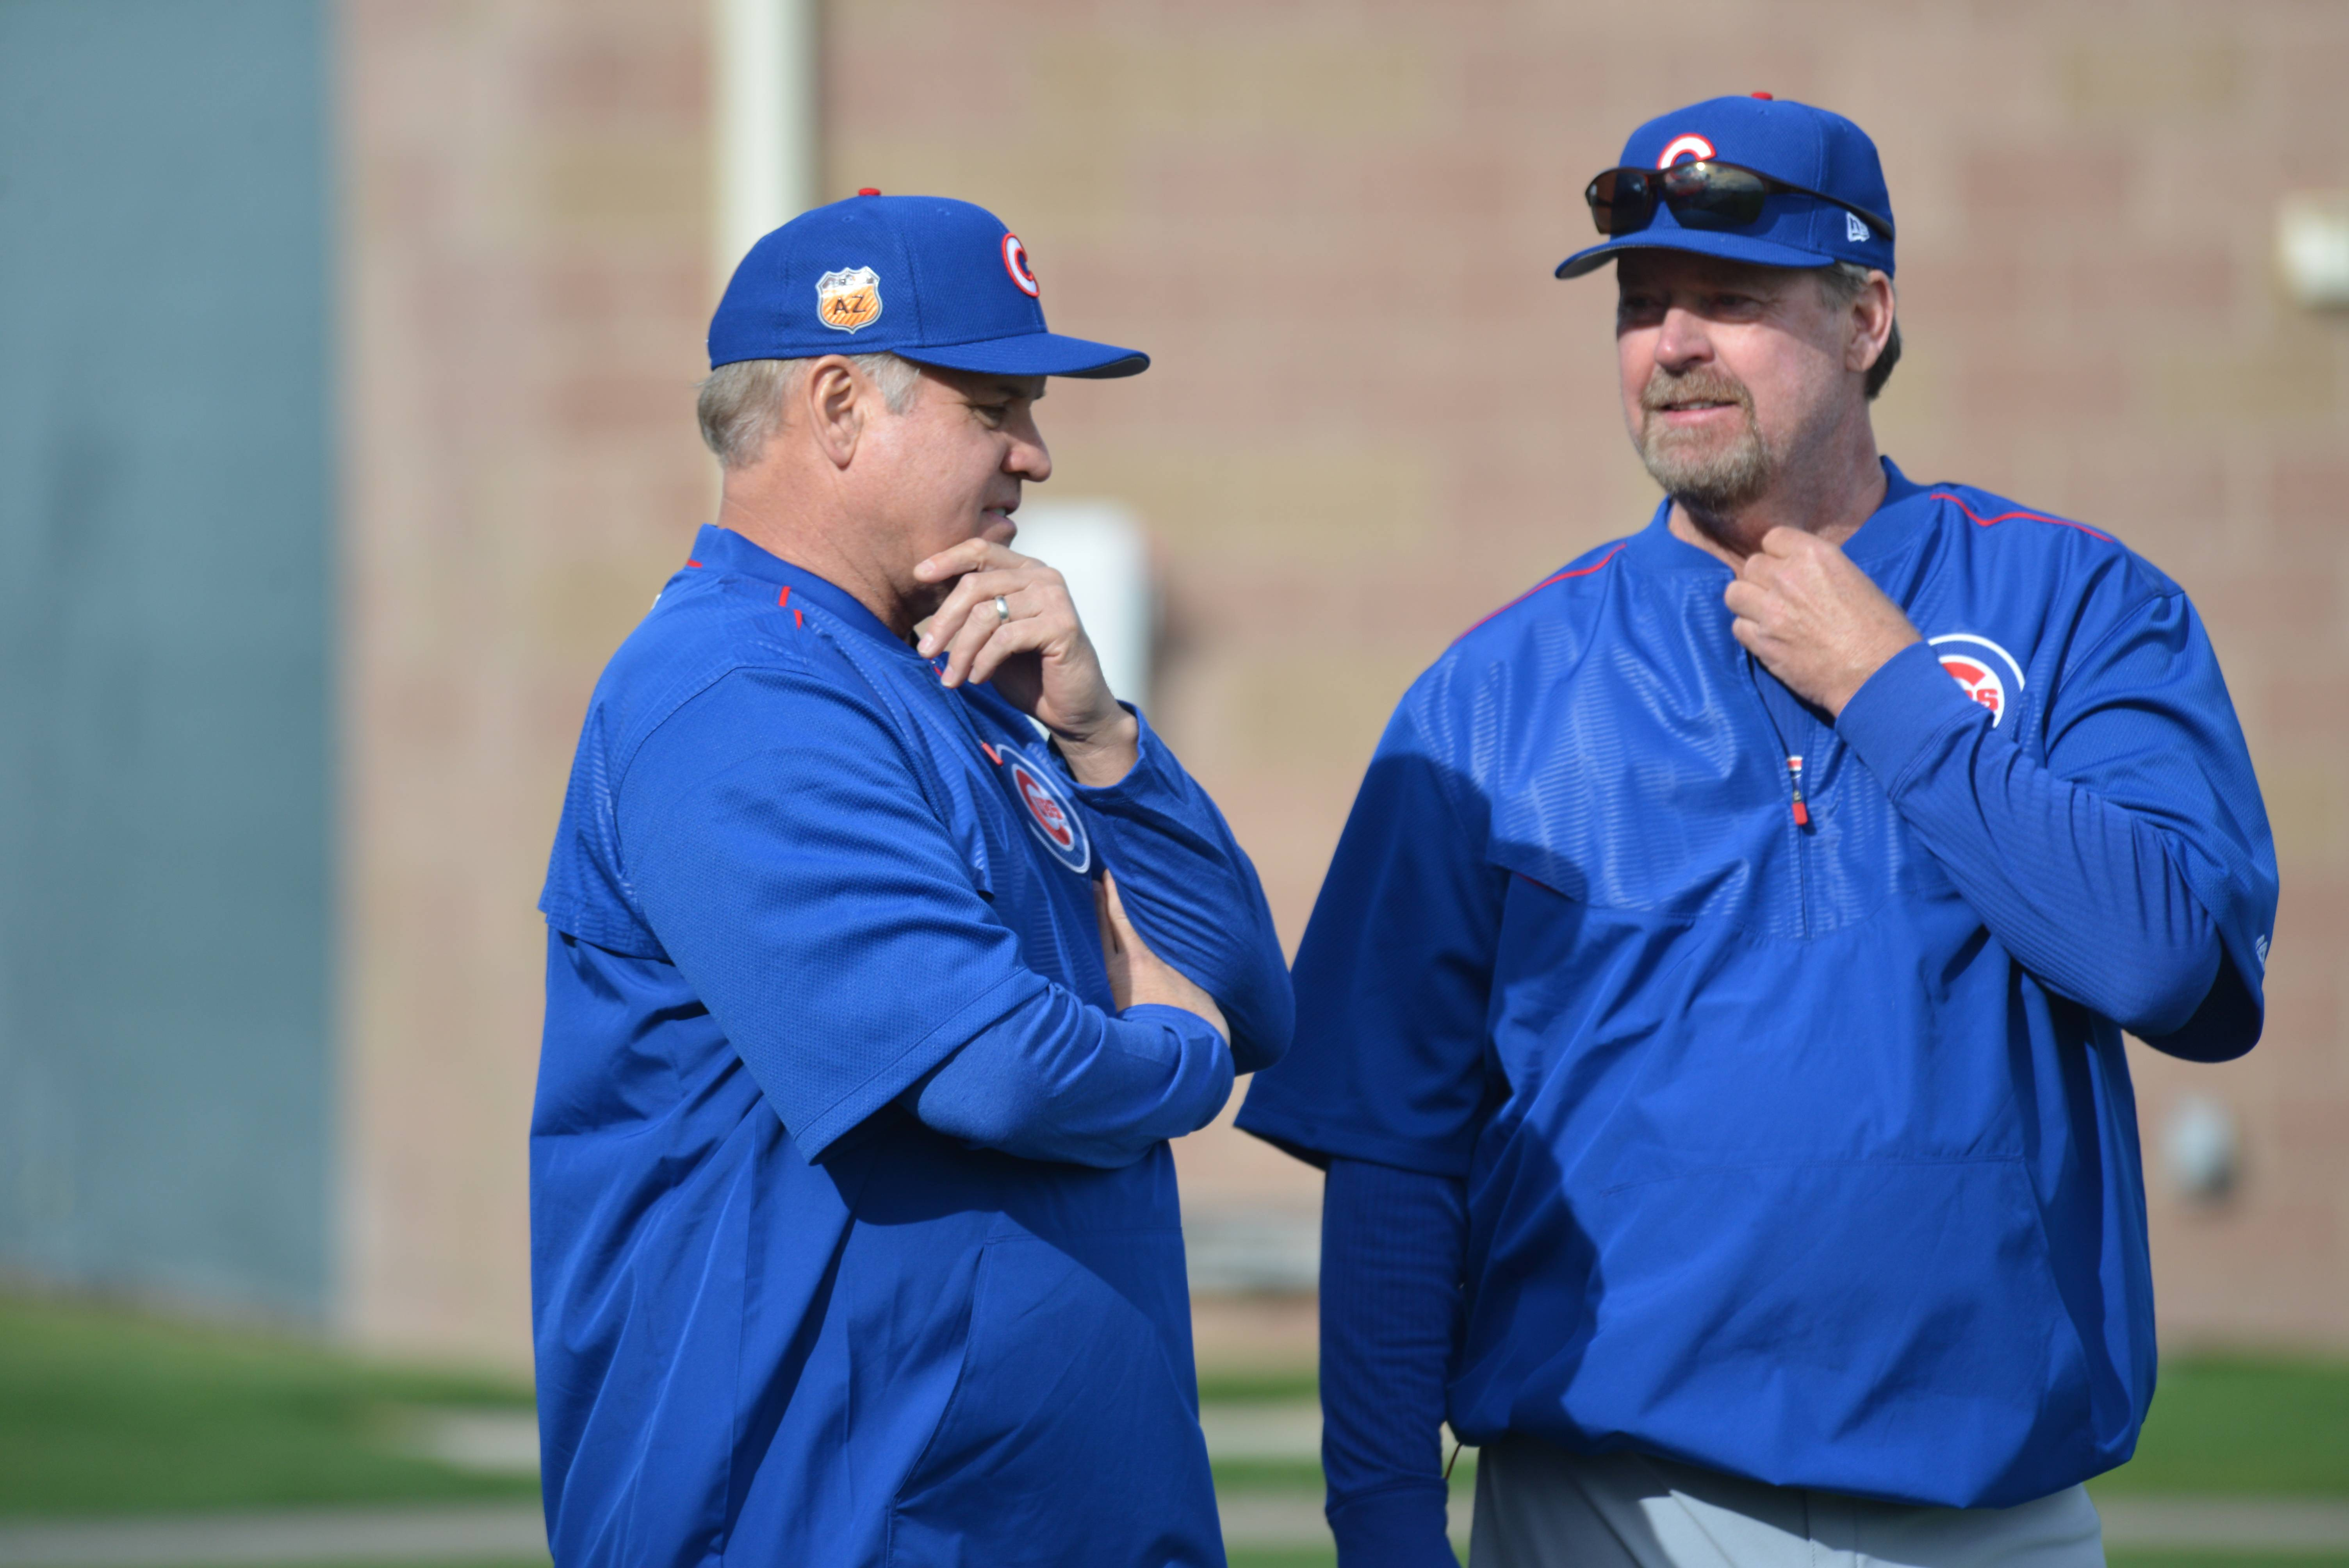 Ryne Sandberg was at spring traing camp with the Cubs on Friday, and he also spent time with former teammate and pitching instructor Rick Sutcliffe.